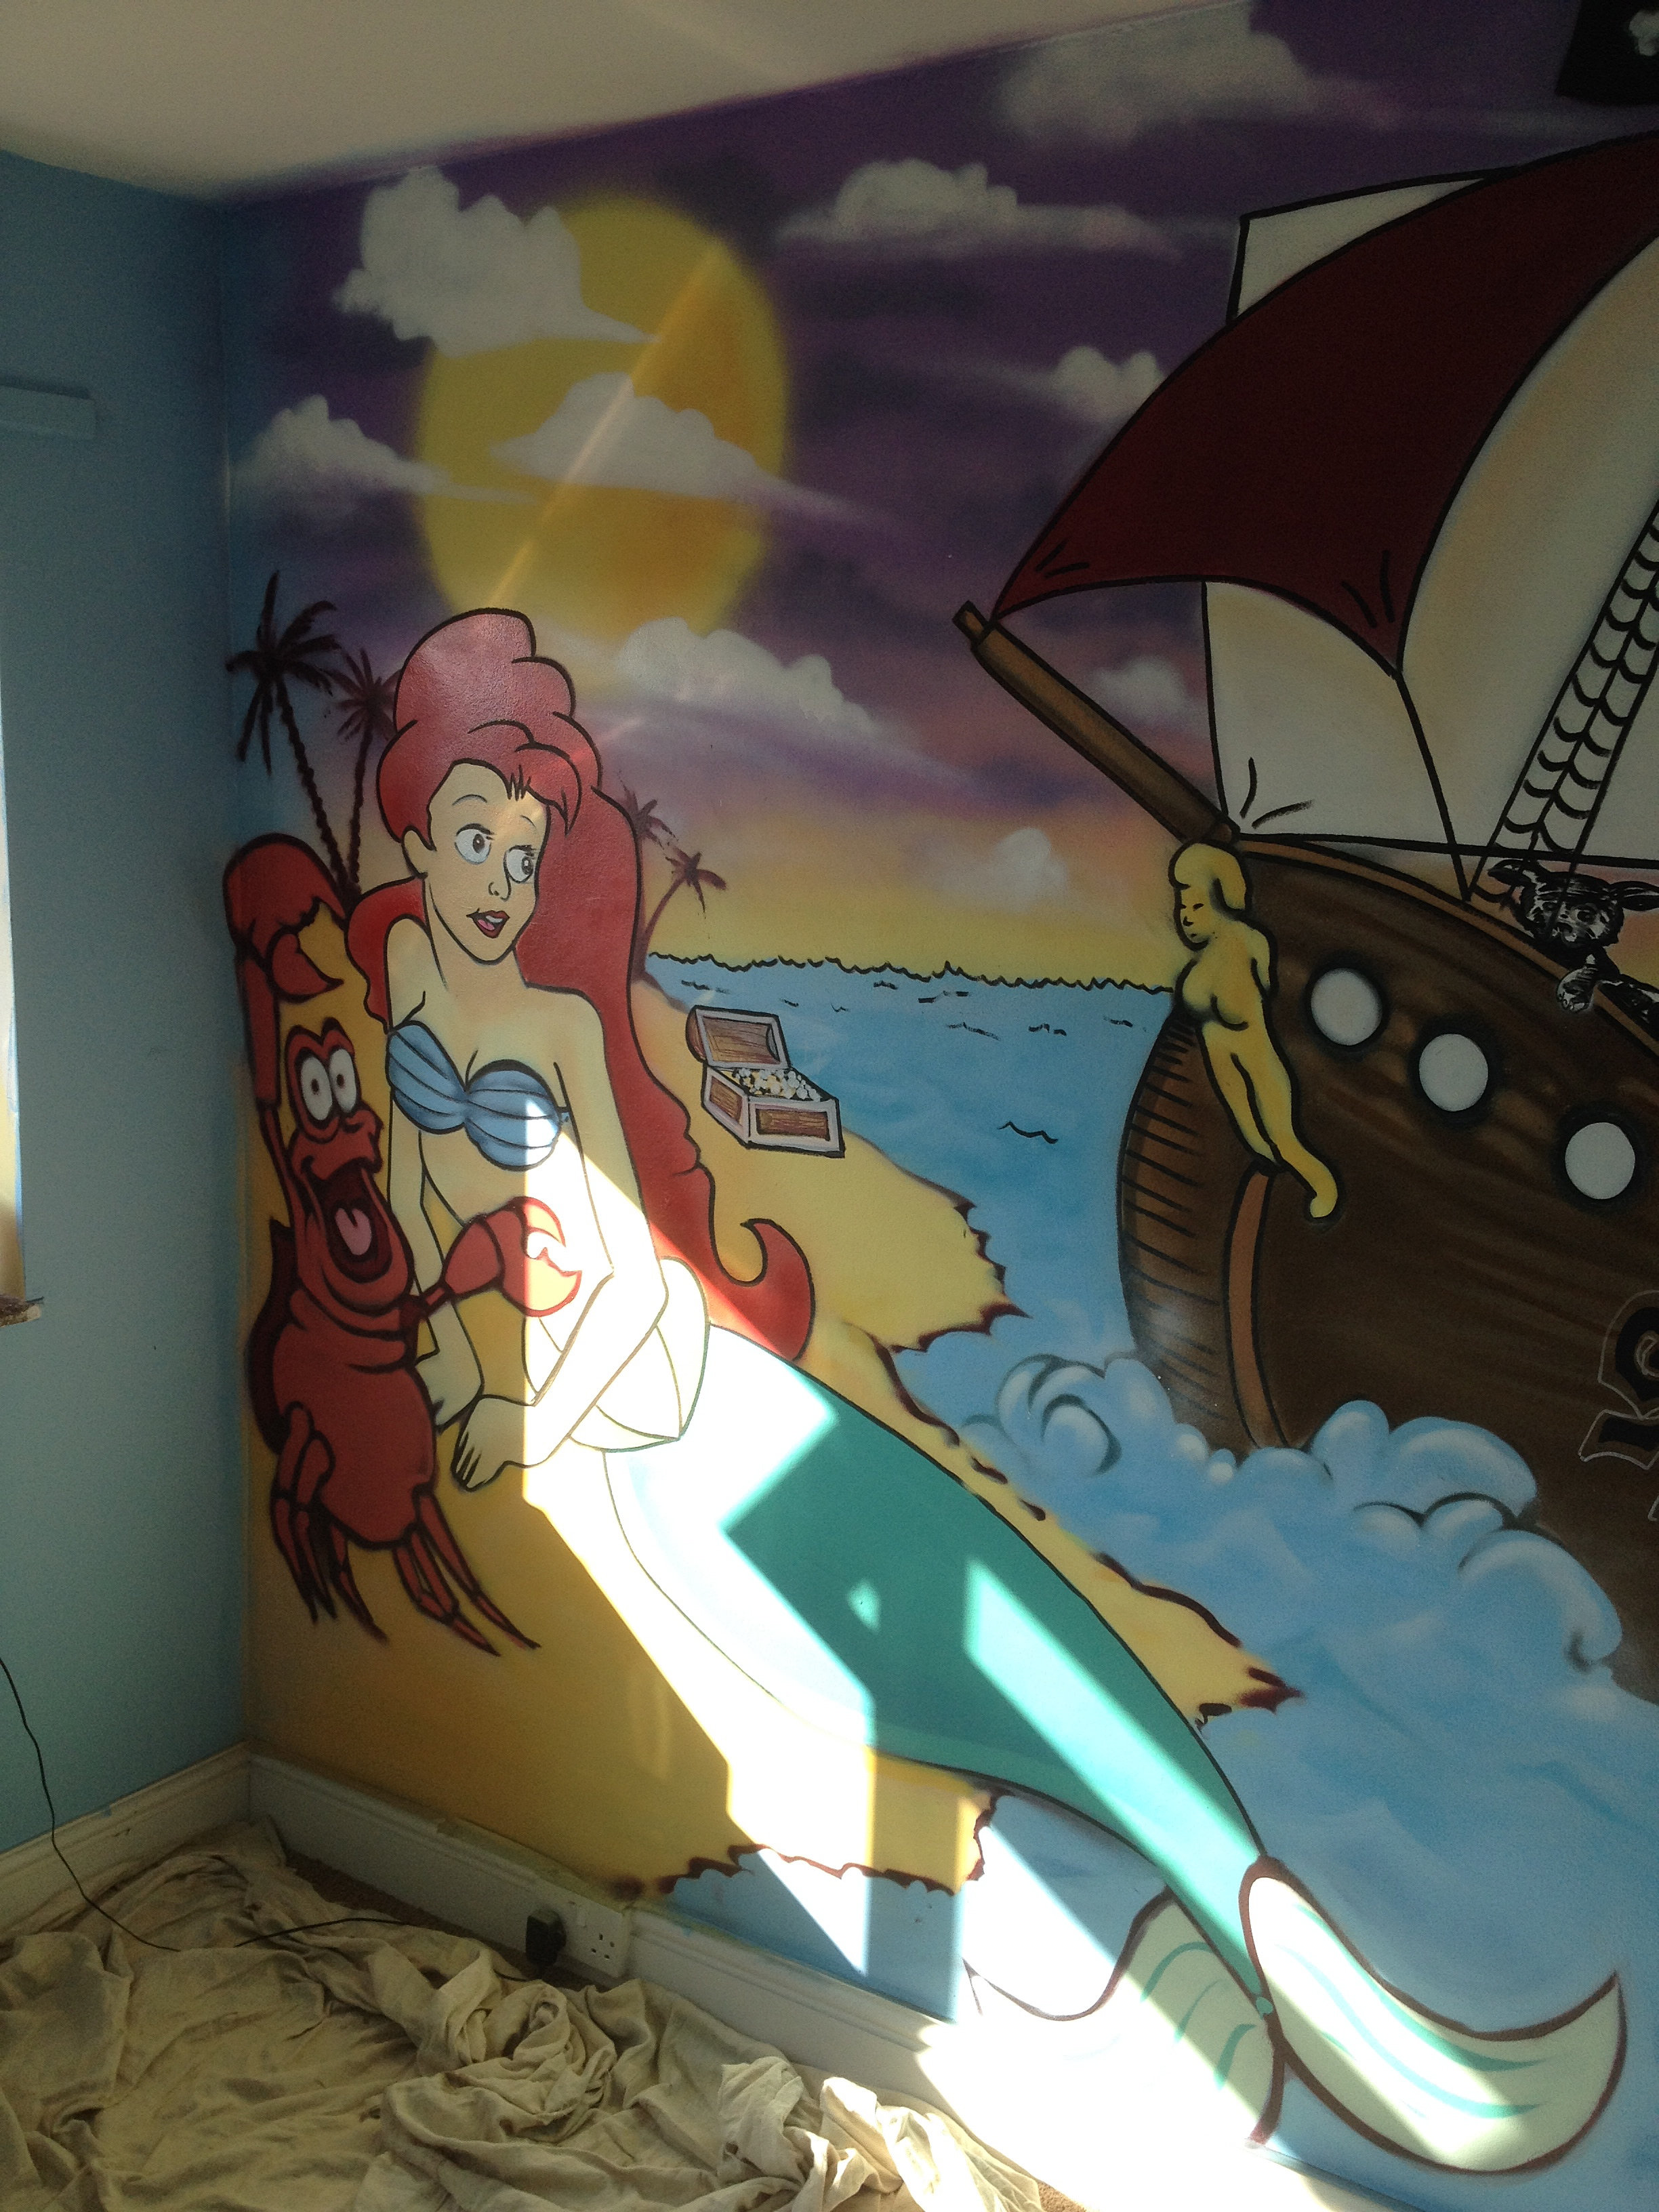 Little Mermaid Bedroom Demograffix The Hertfordshire And London Graffiti Art Specialists